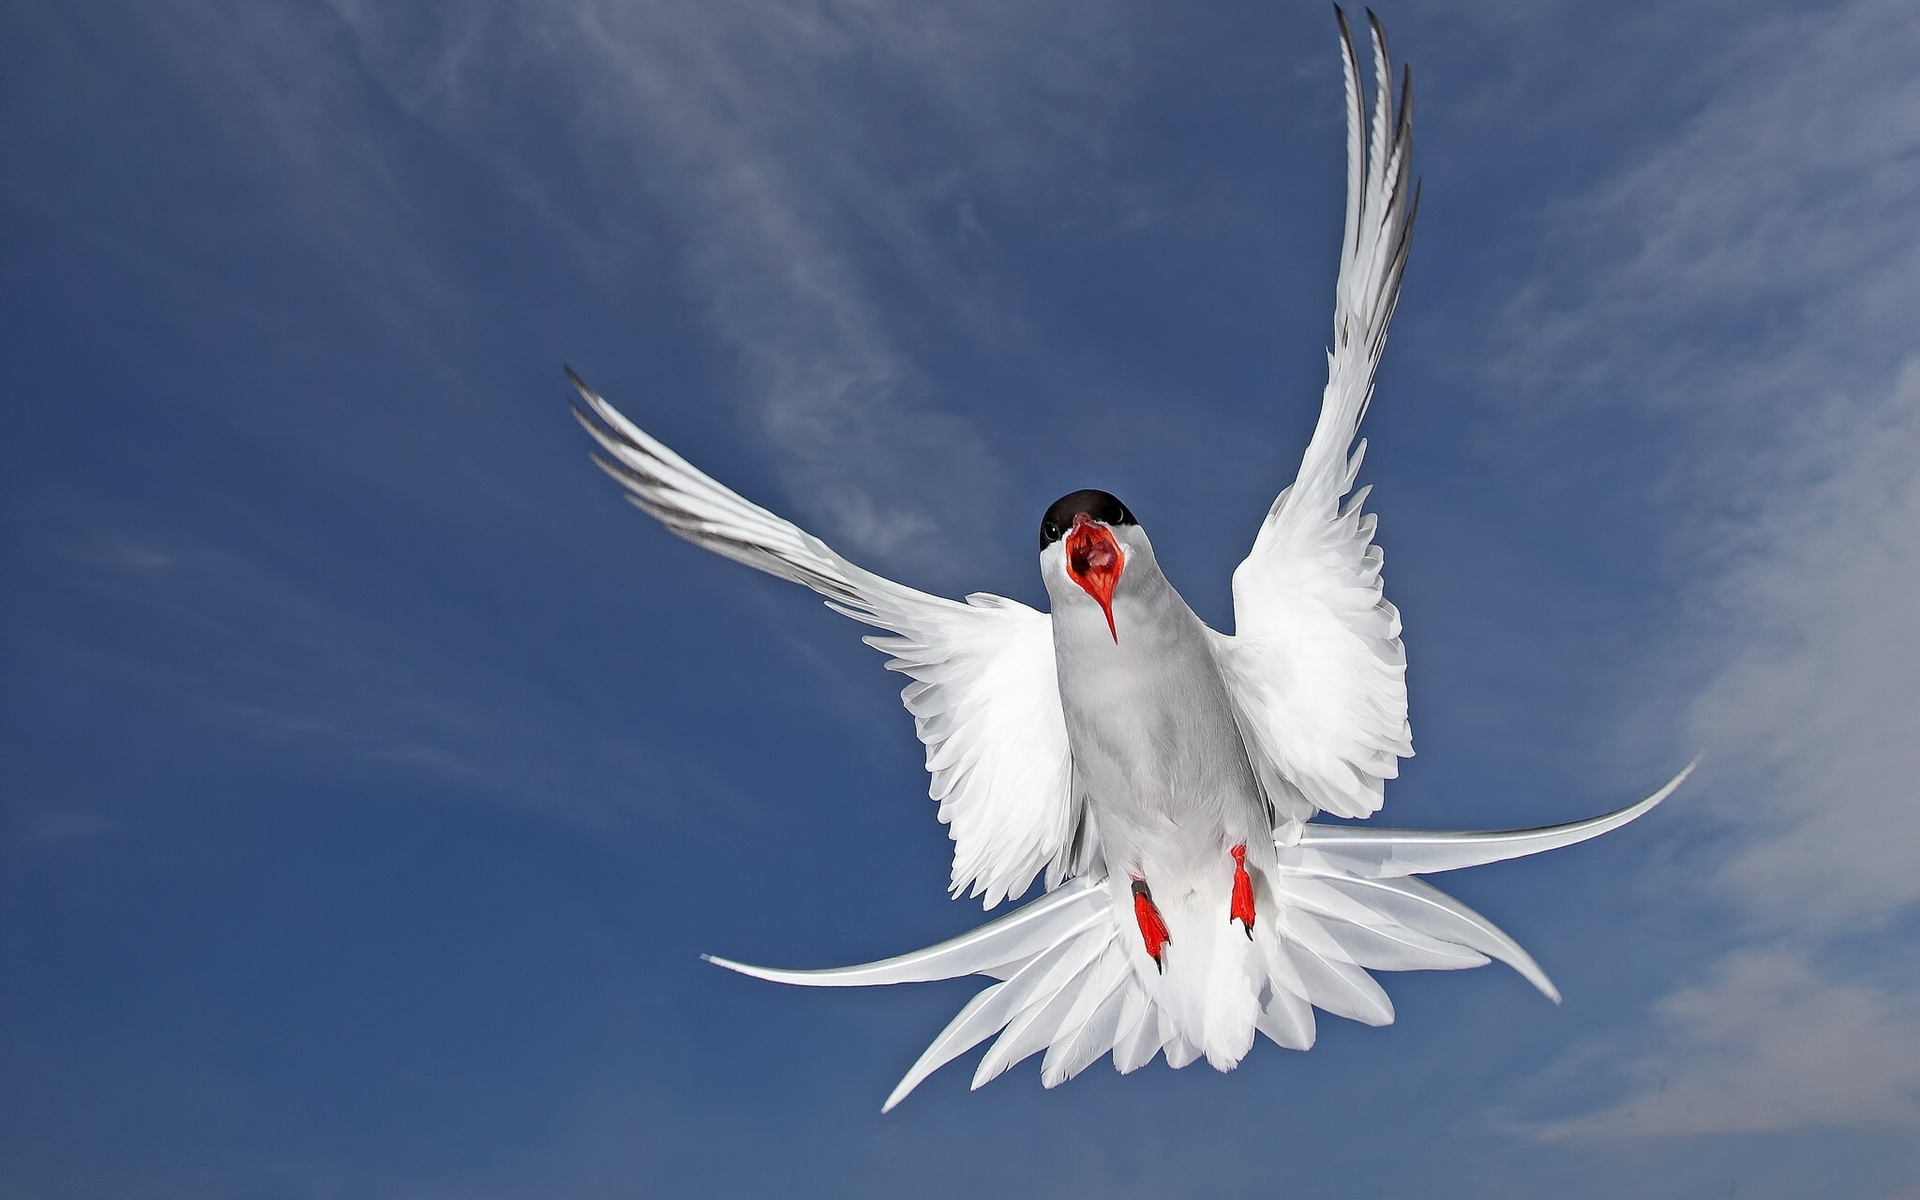 33777 download wallpaper Animals, Birds, Seagulls screensavers and pictures for free